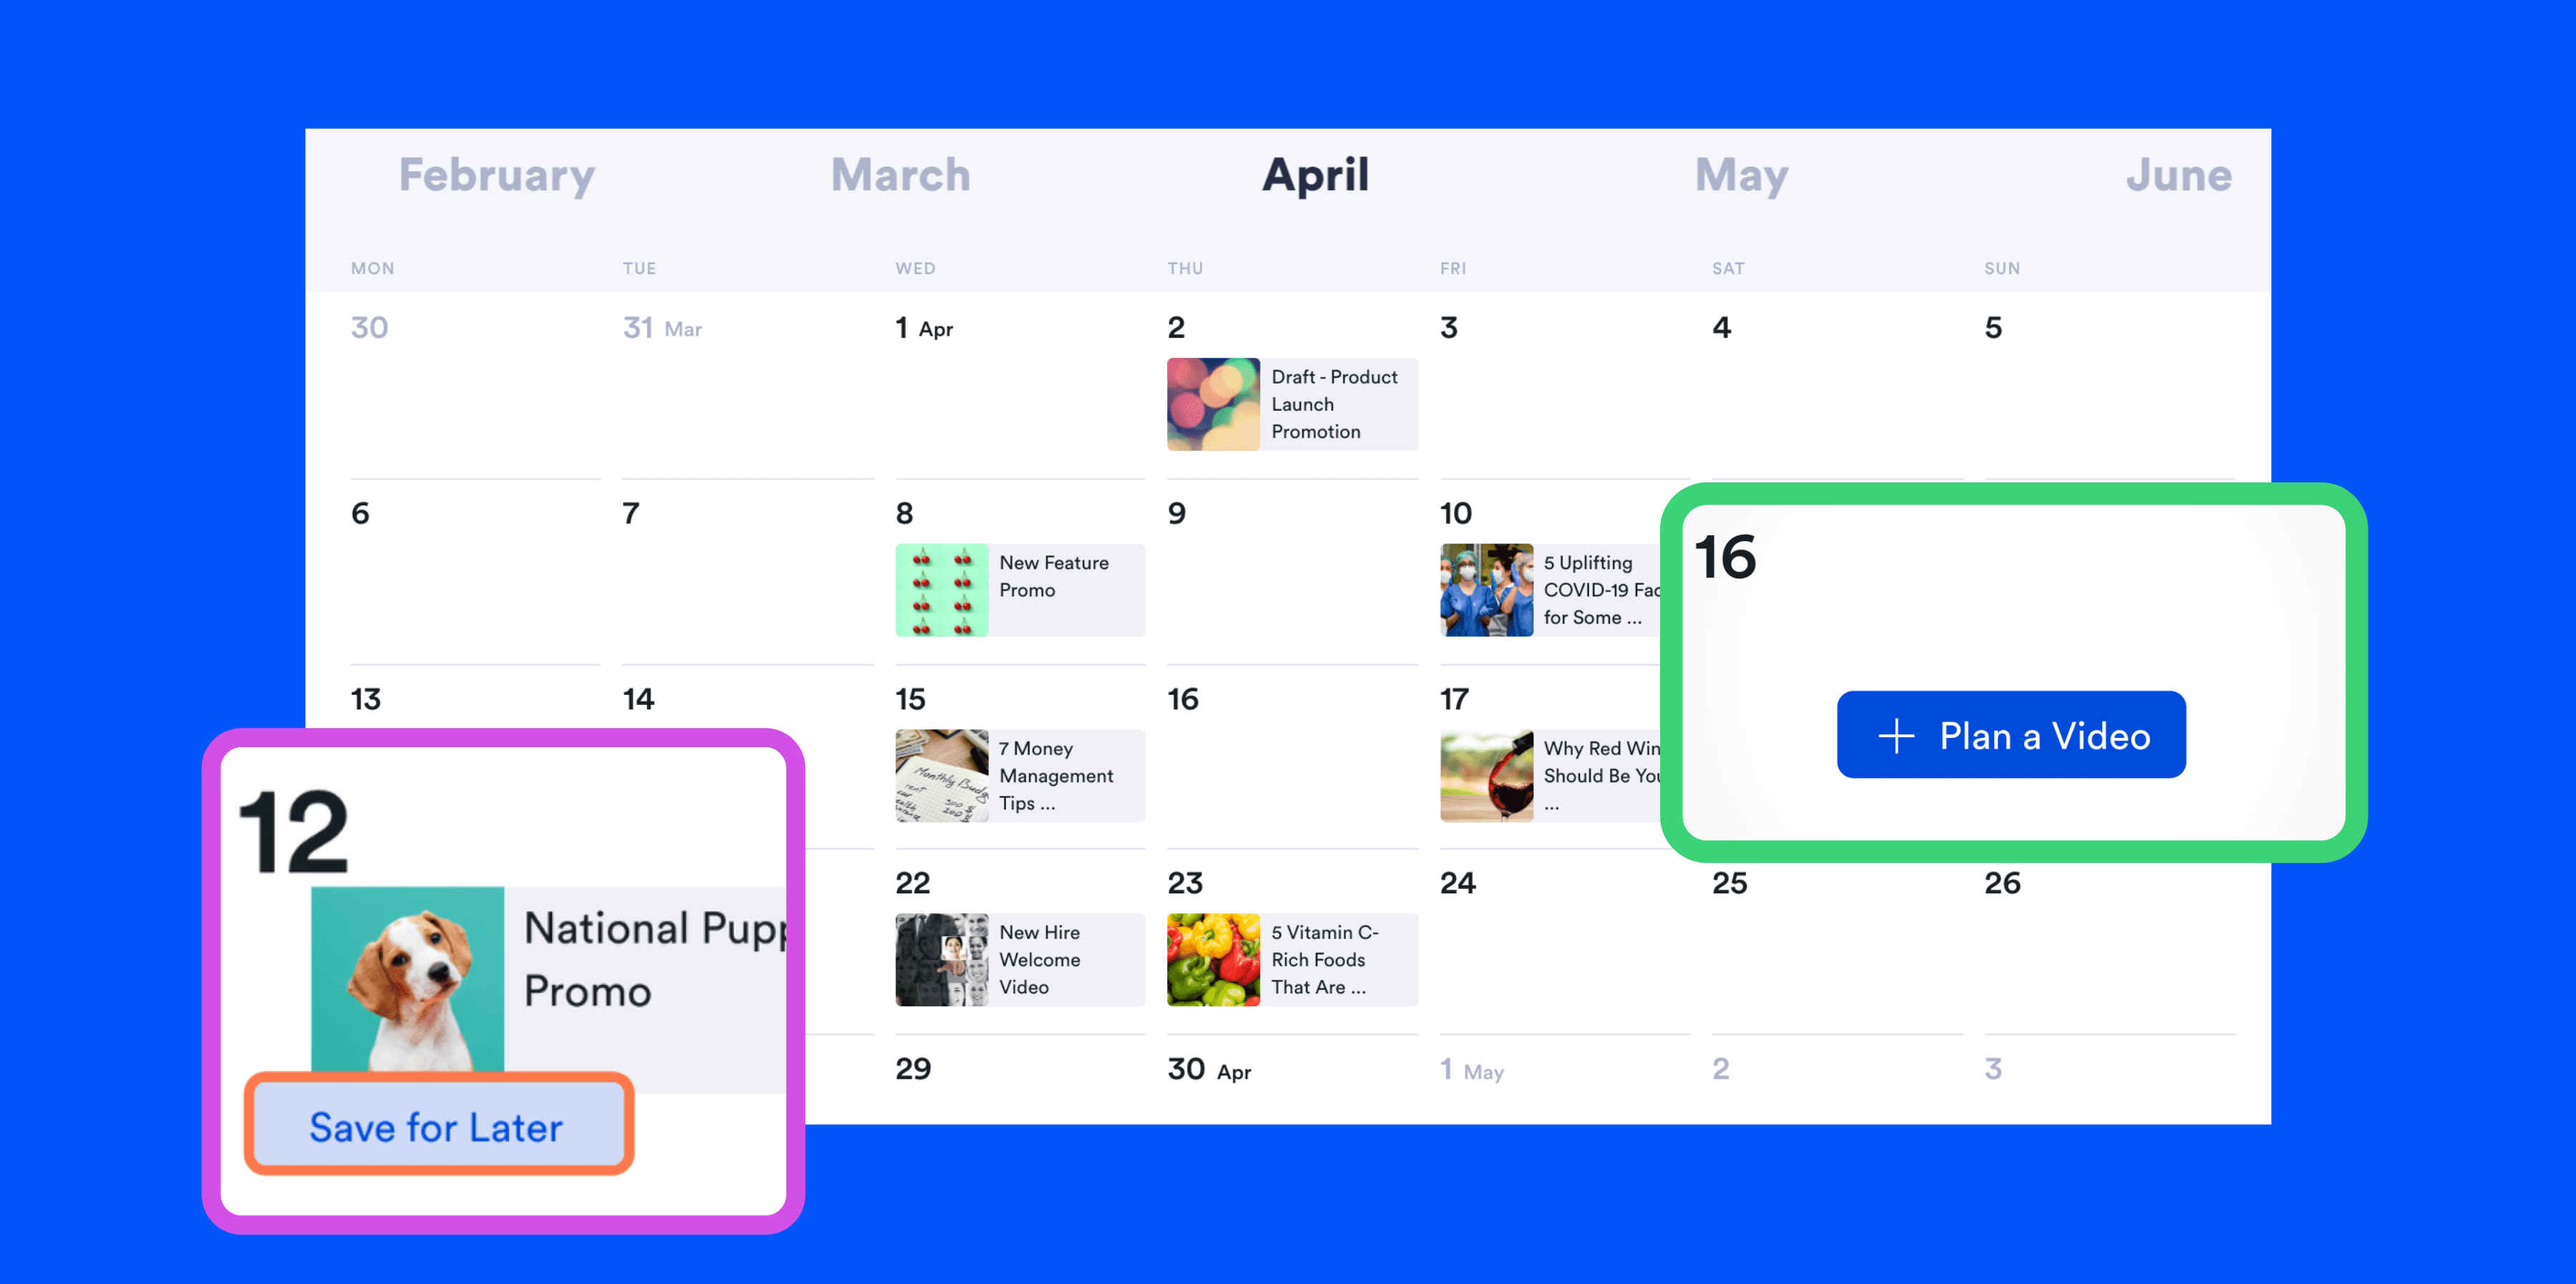 The content calendar tool for mapping your video content calendar